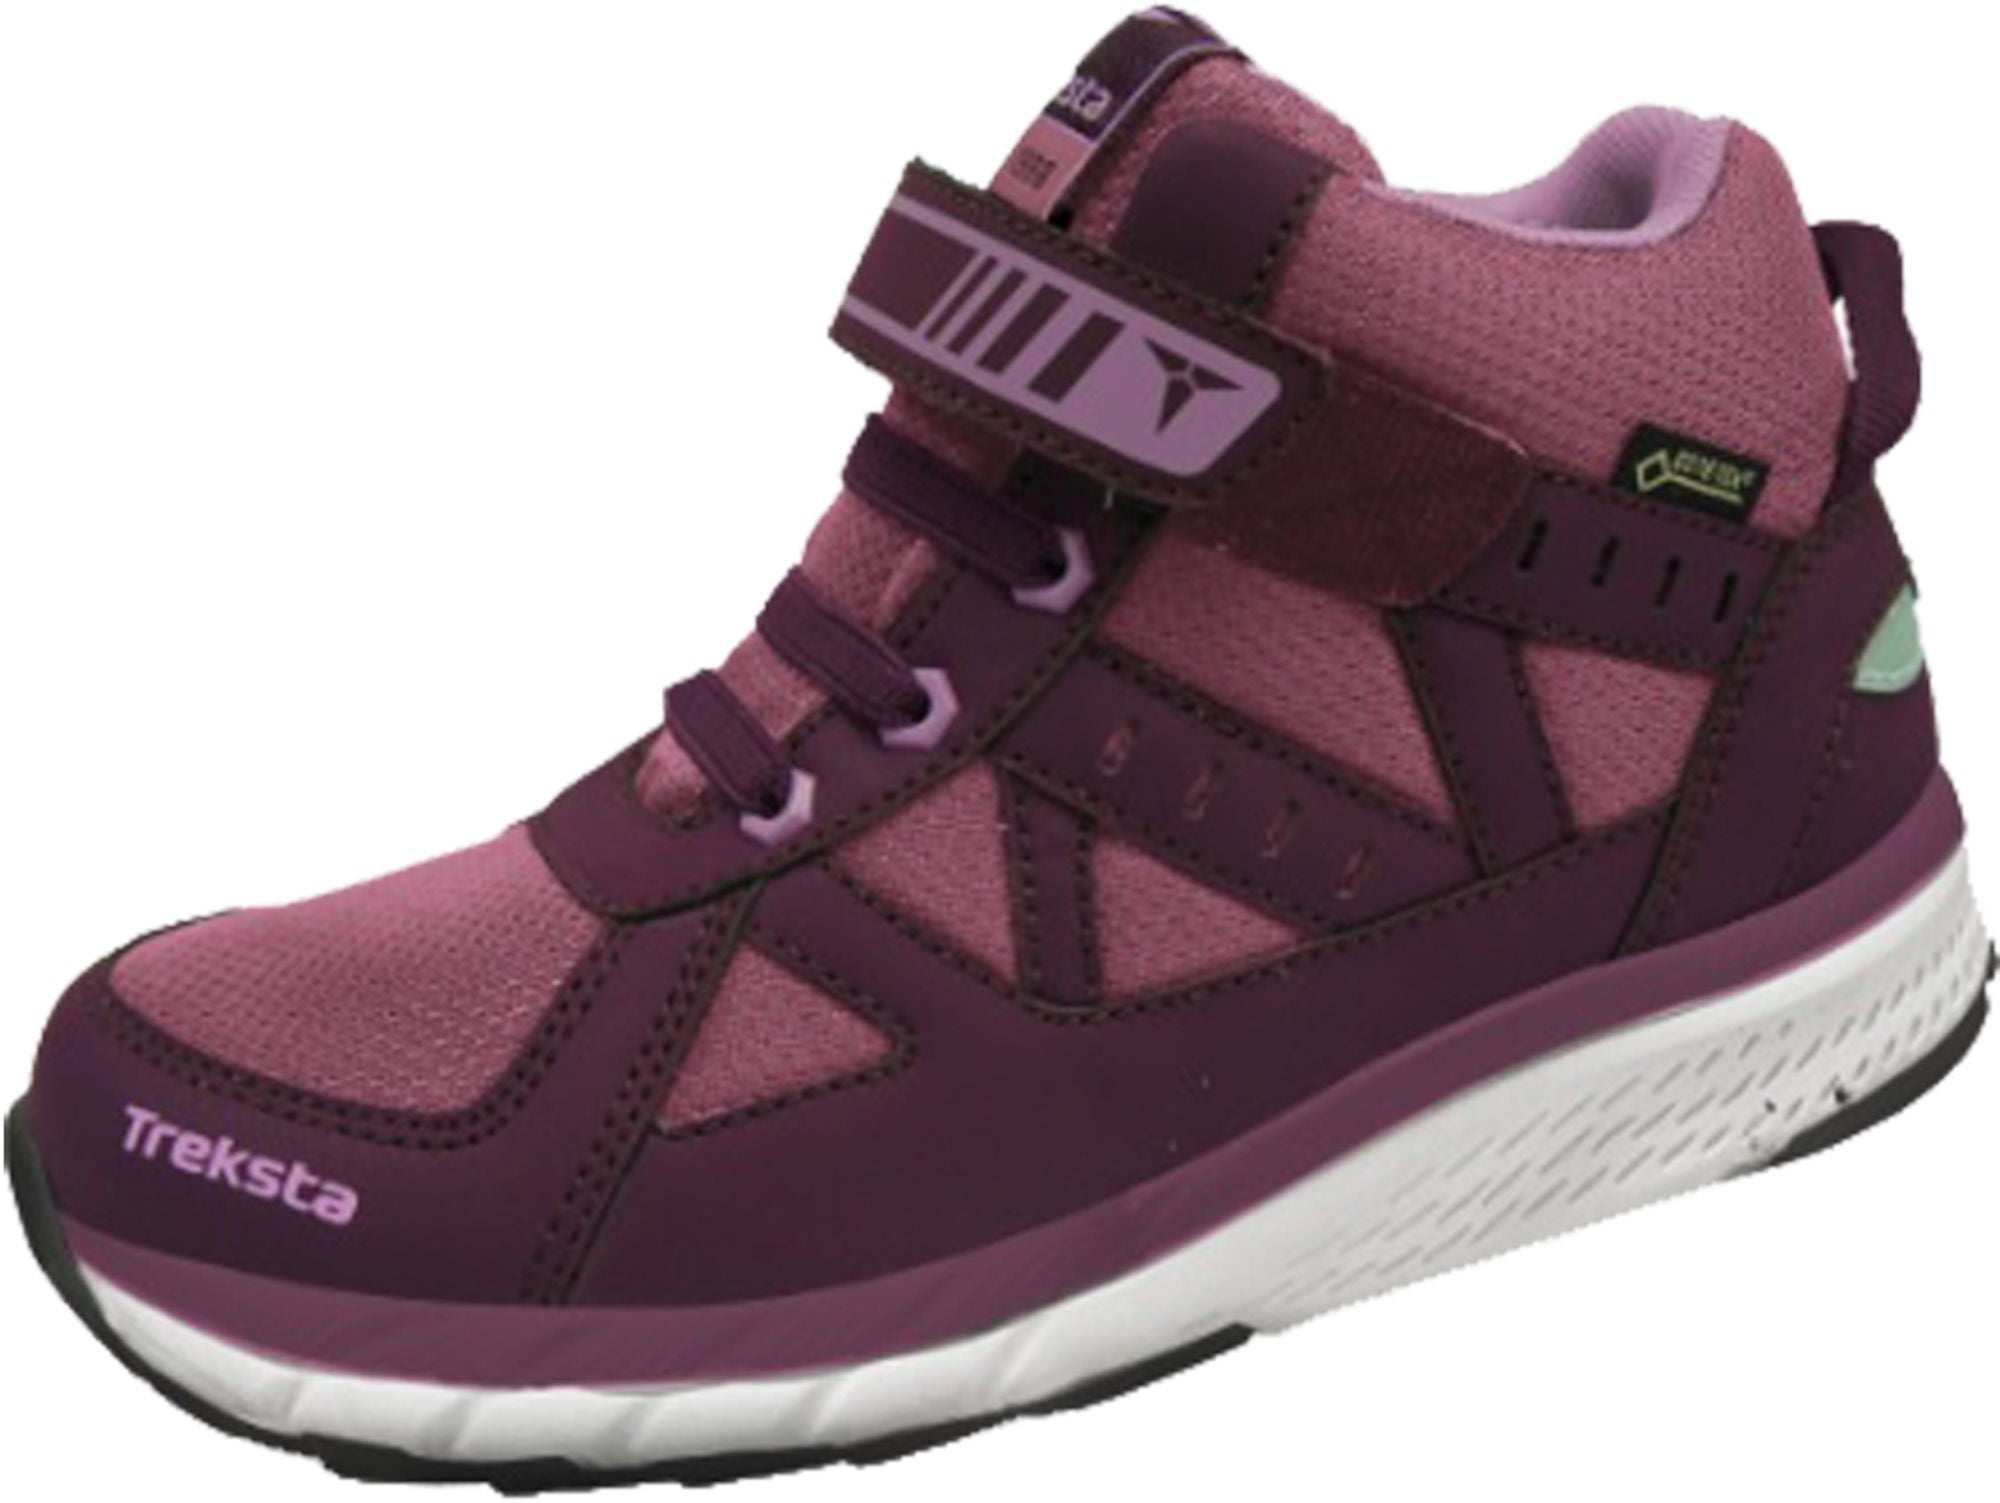 Timberland Ossipee pink boots AW LAB